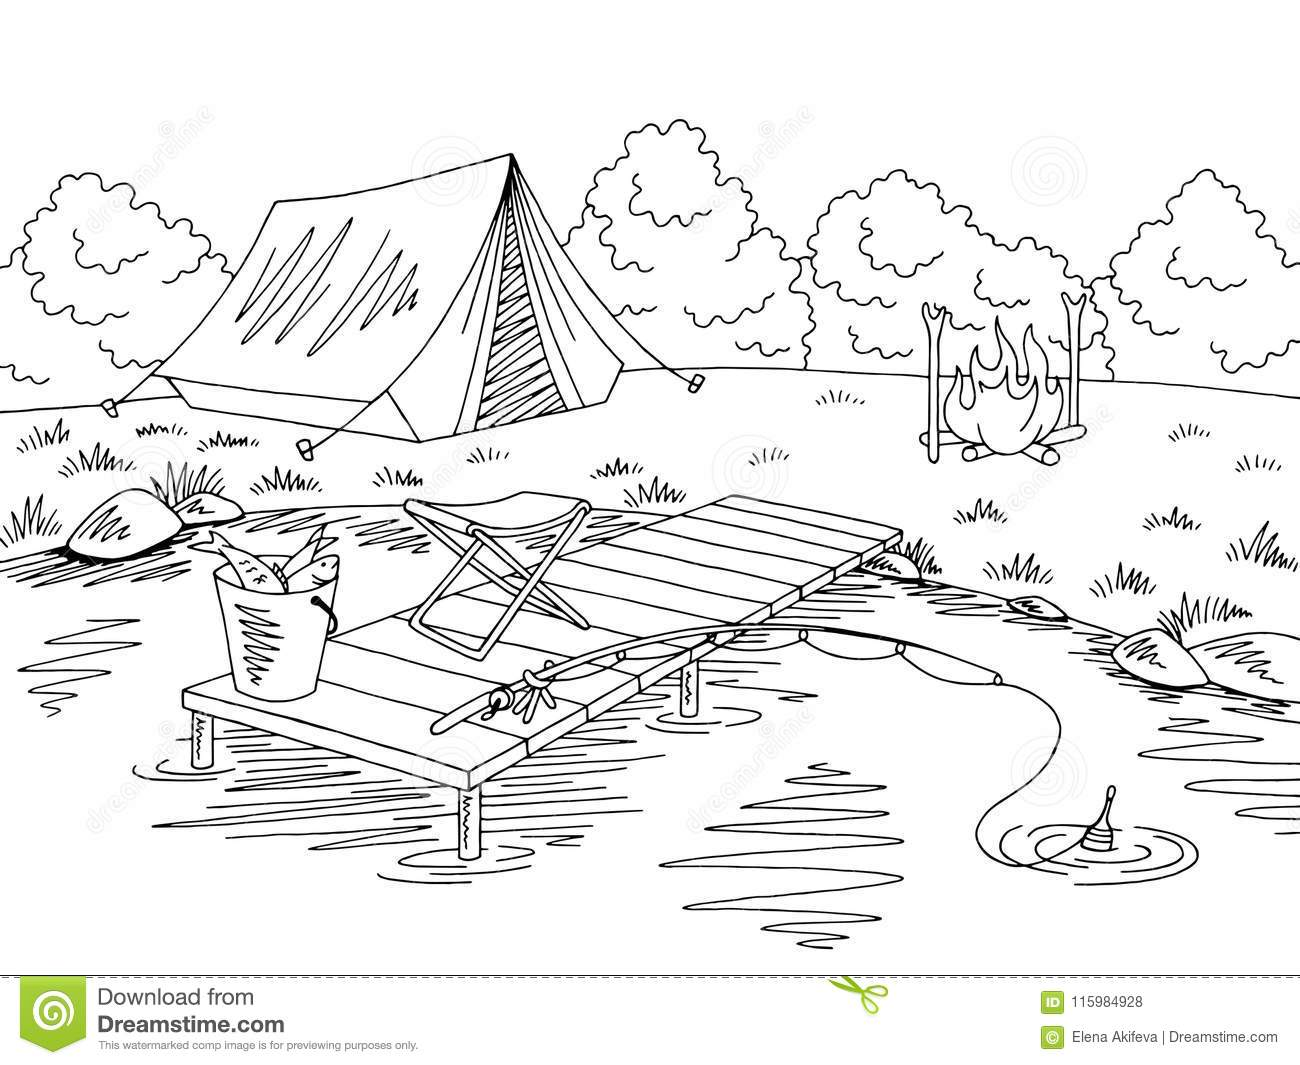 Fishing Camping Graphic Black White Landscape Sketch